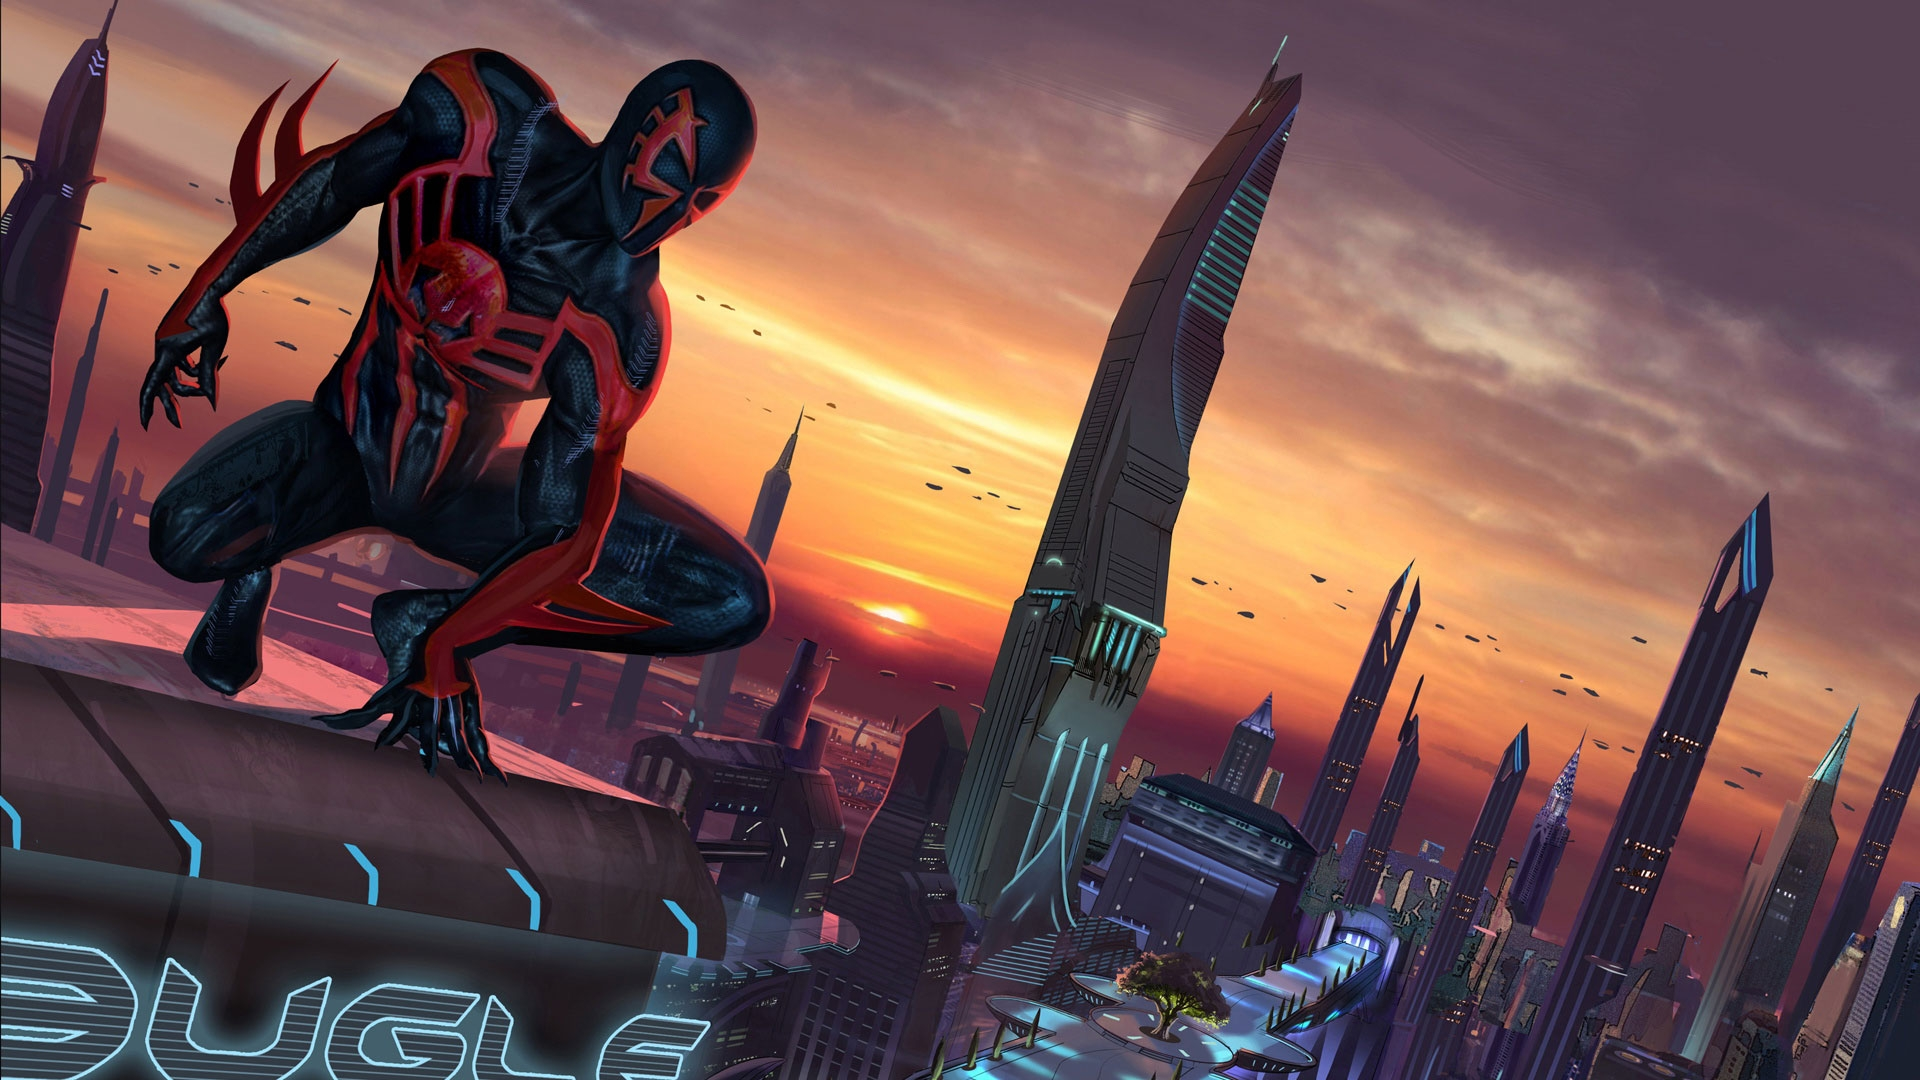 10 Top Spider Man 2099 Wallpaper Full Hd 1080p For Pc Desktop: Spider-Man 2099 Full HD Wallpaper And Background Image